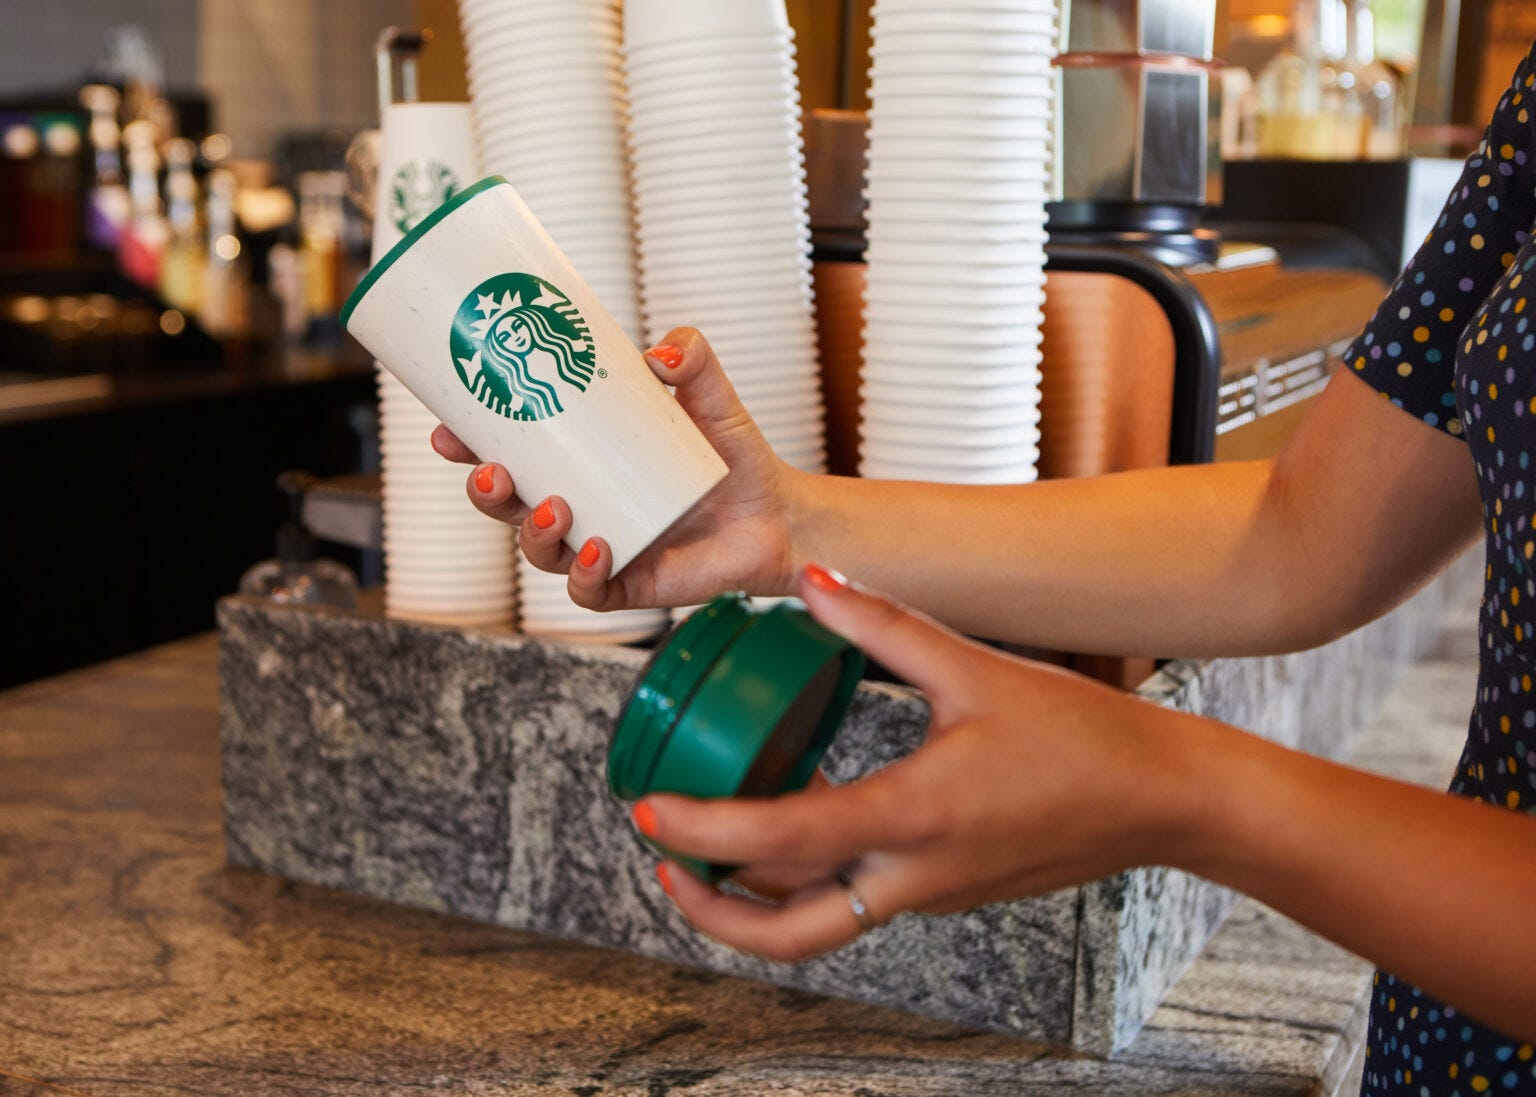 Starbucks to allow reusable cups again after 15-month break amid COVID